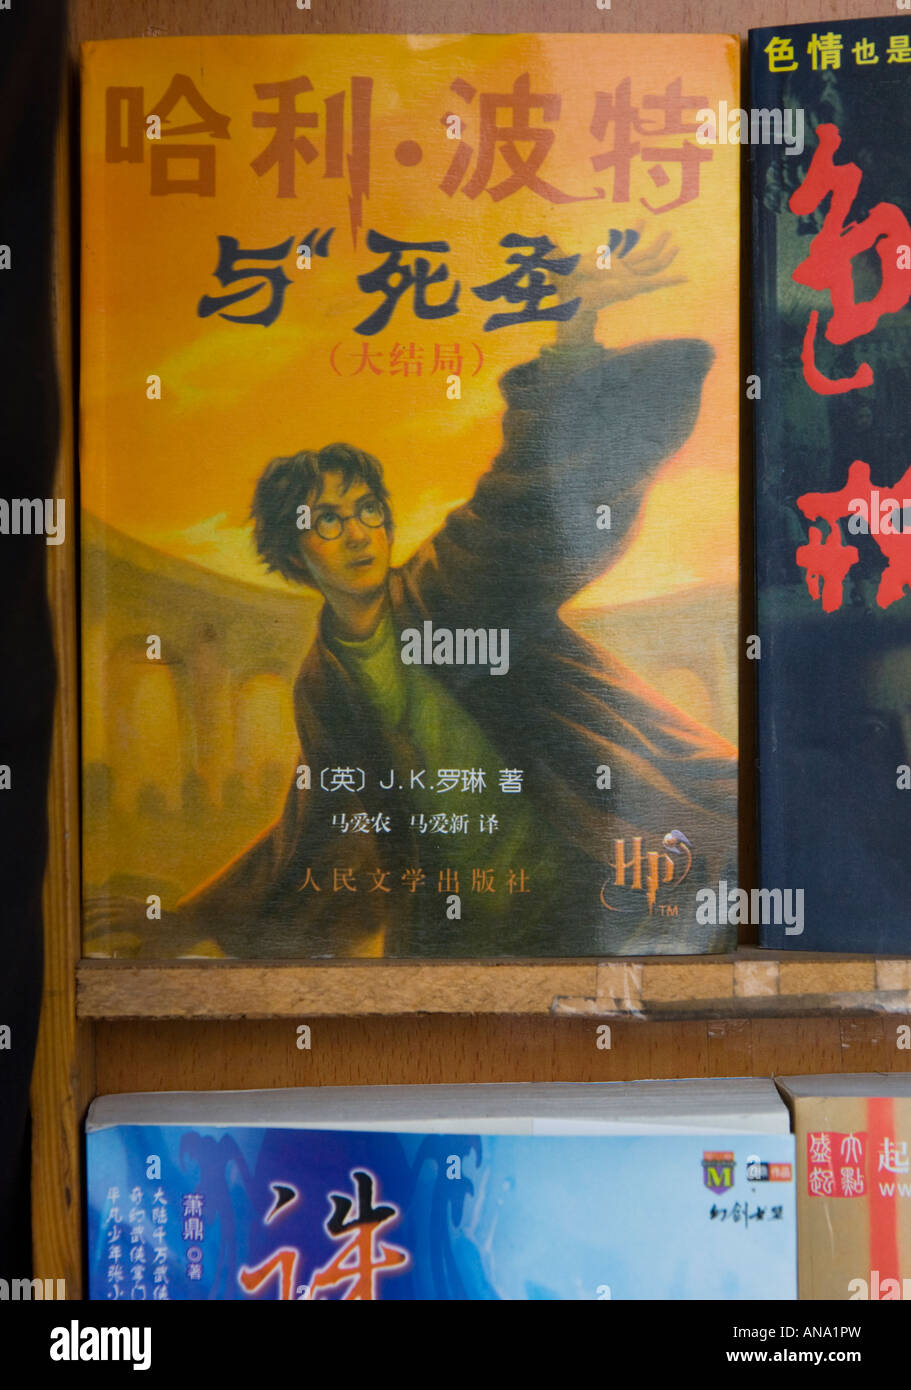 China Chengdu city center Harry Potter book in chinese on a bookstore shelf - Stock Image